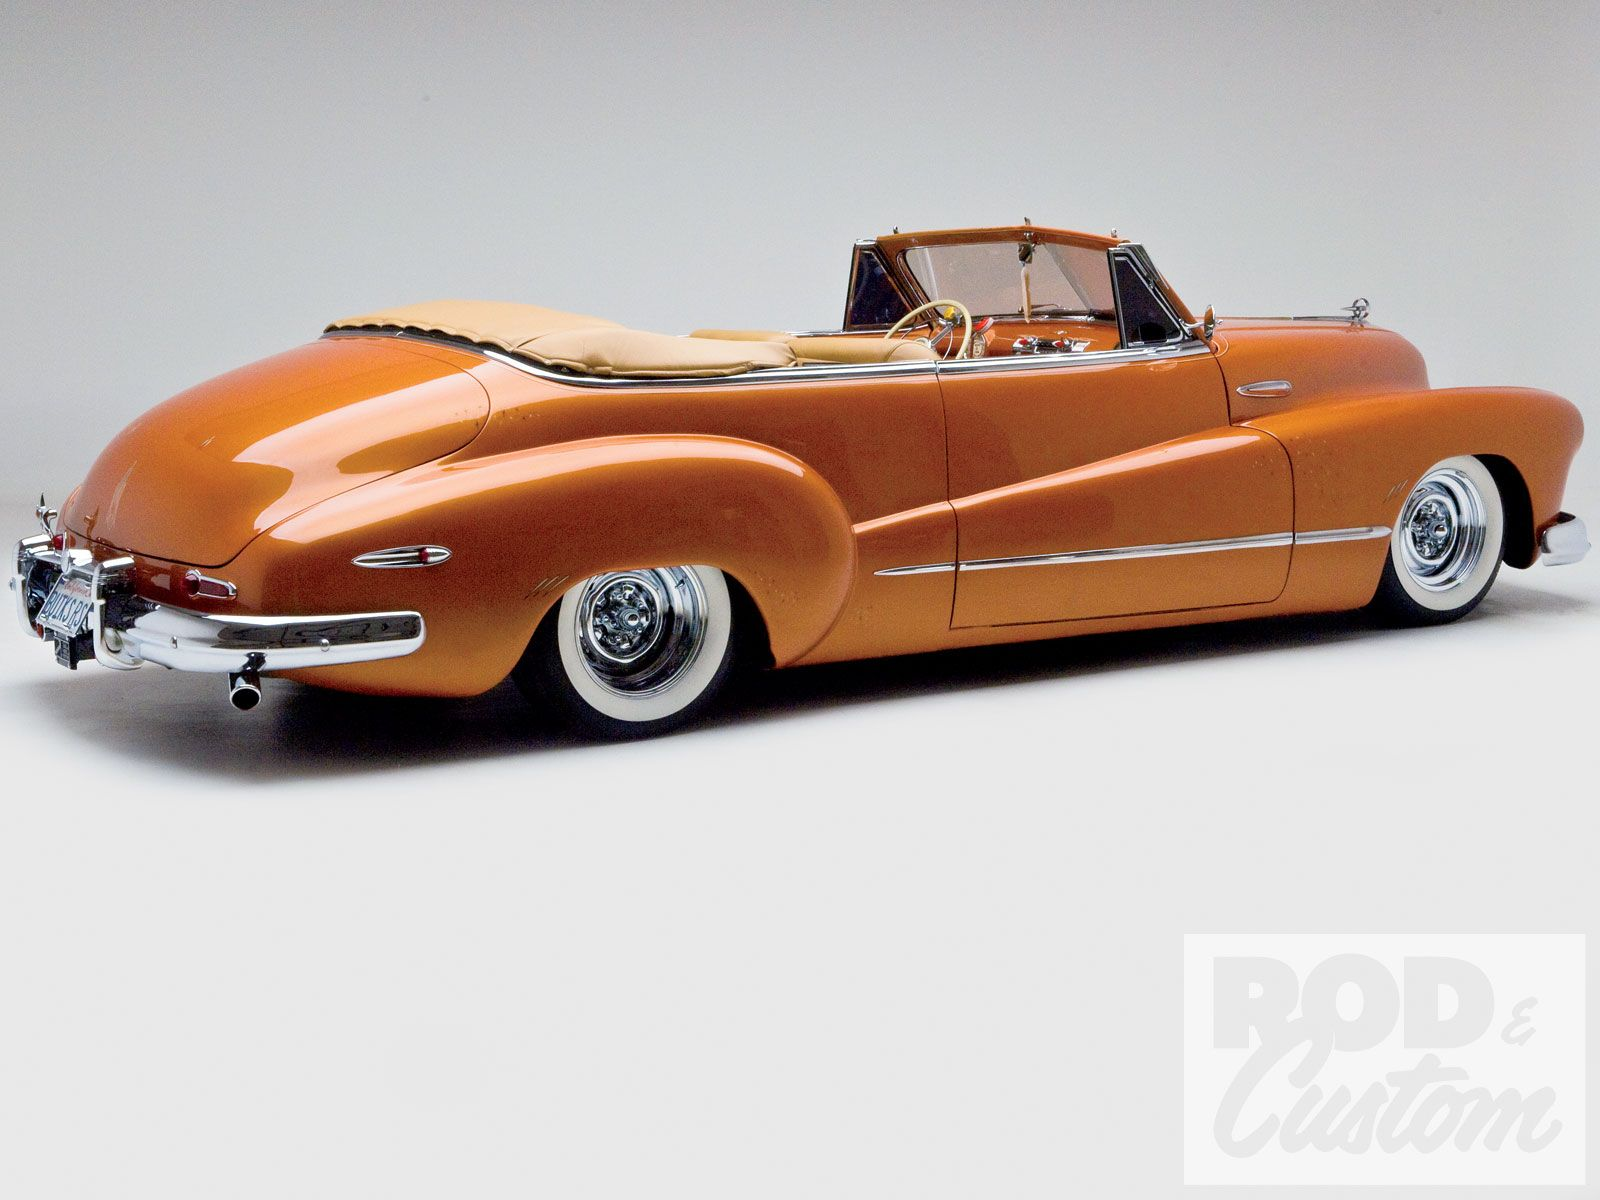 buick old wallpaperup eight convertible sale for usa buicks vintage wallpaper super classic original